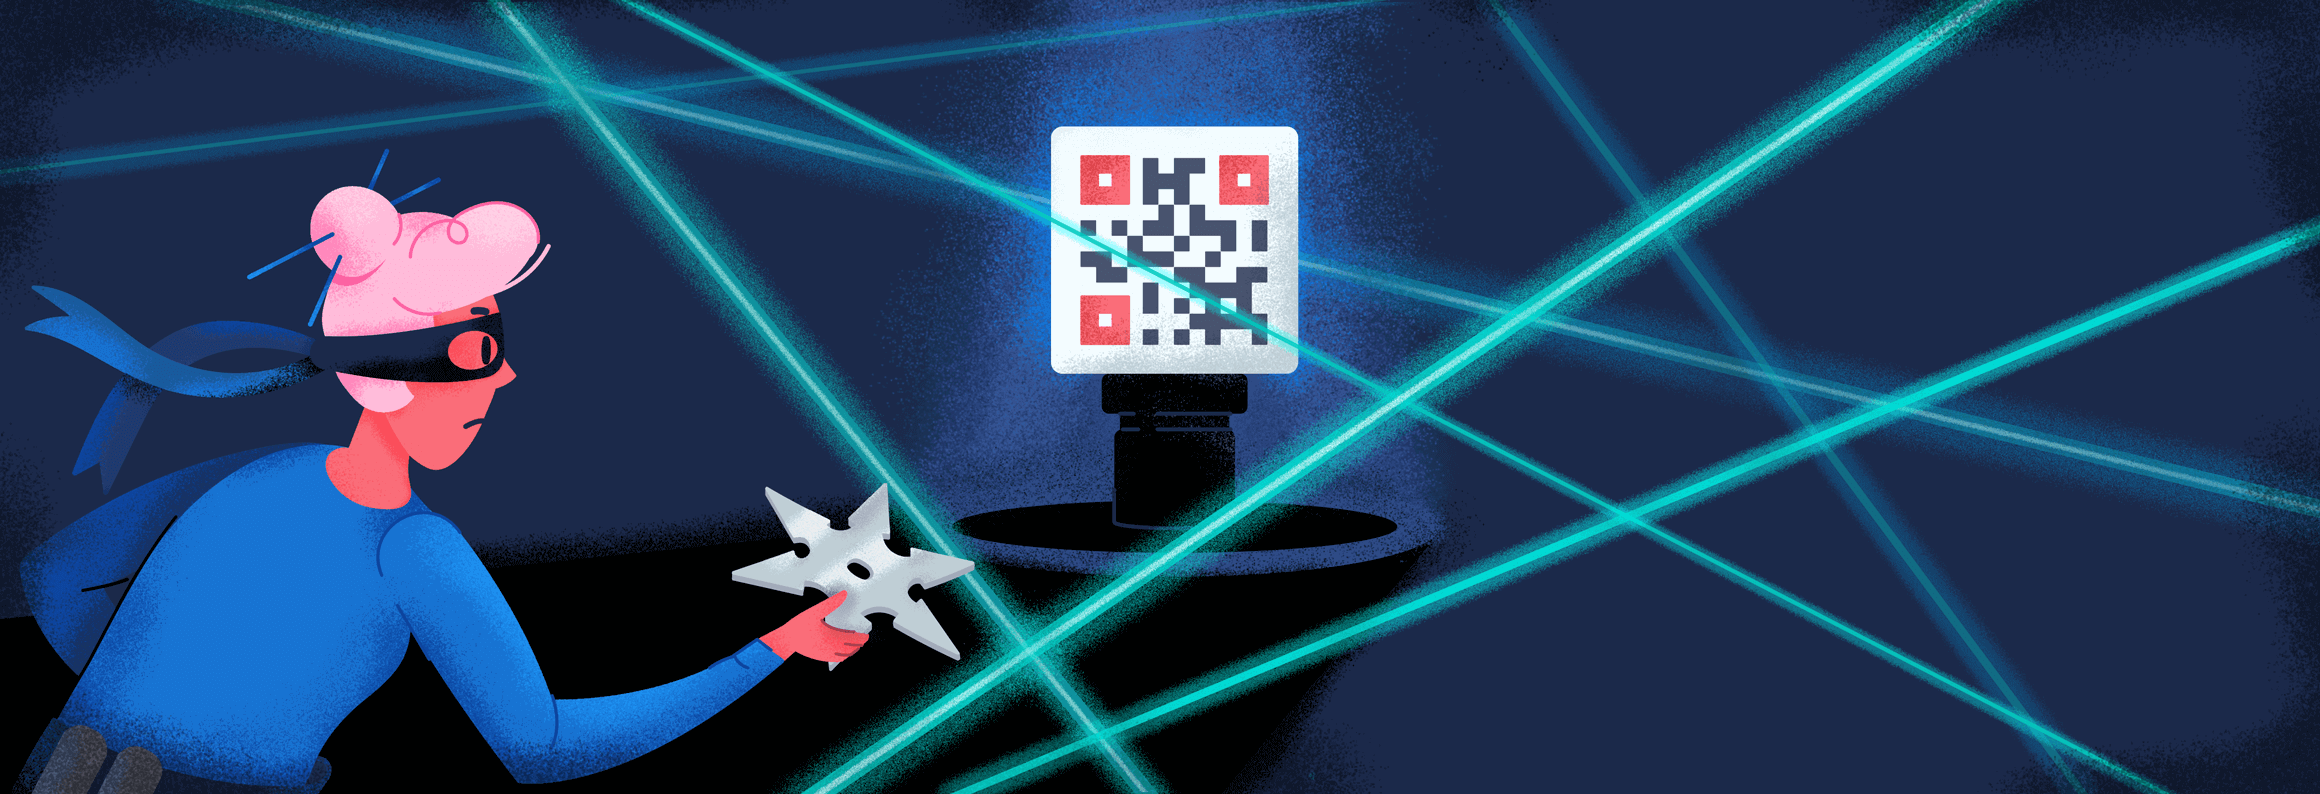 How secure is QR Code?